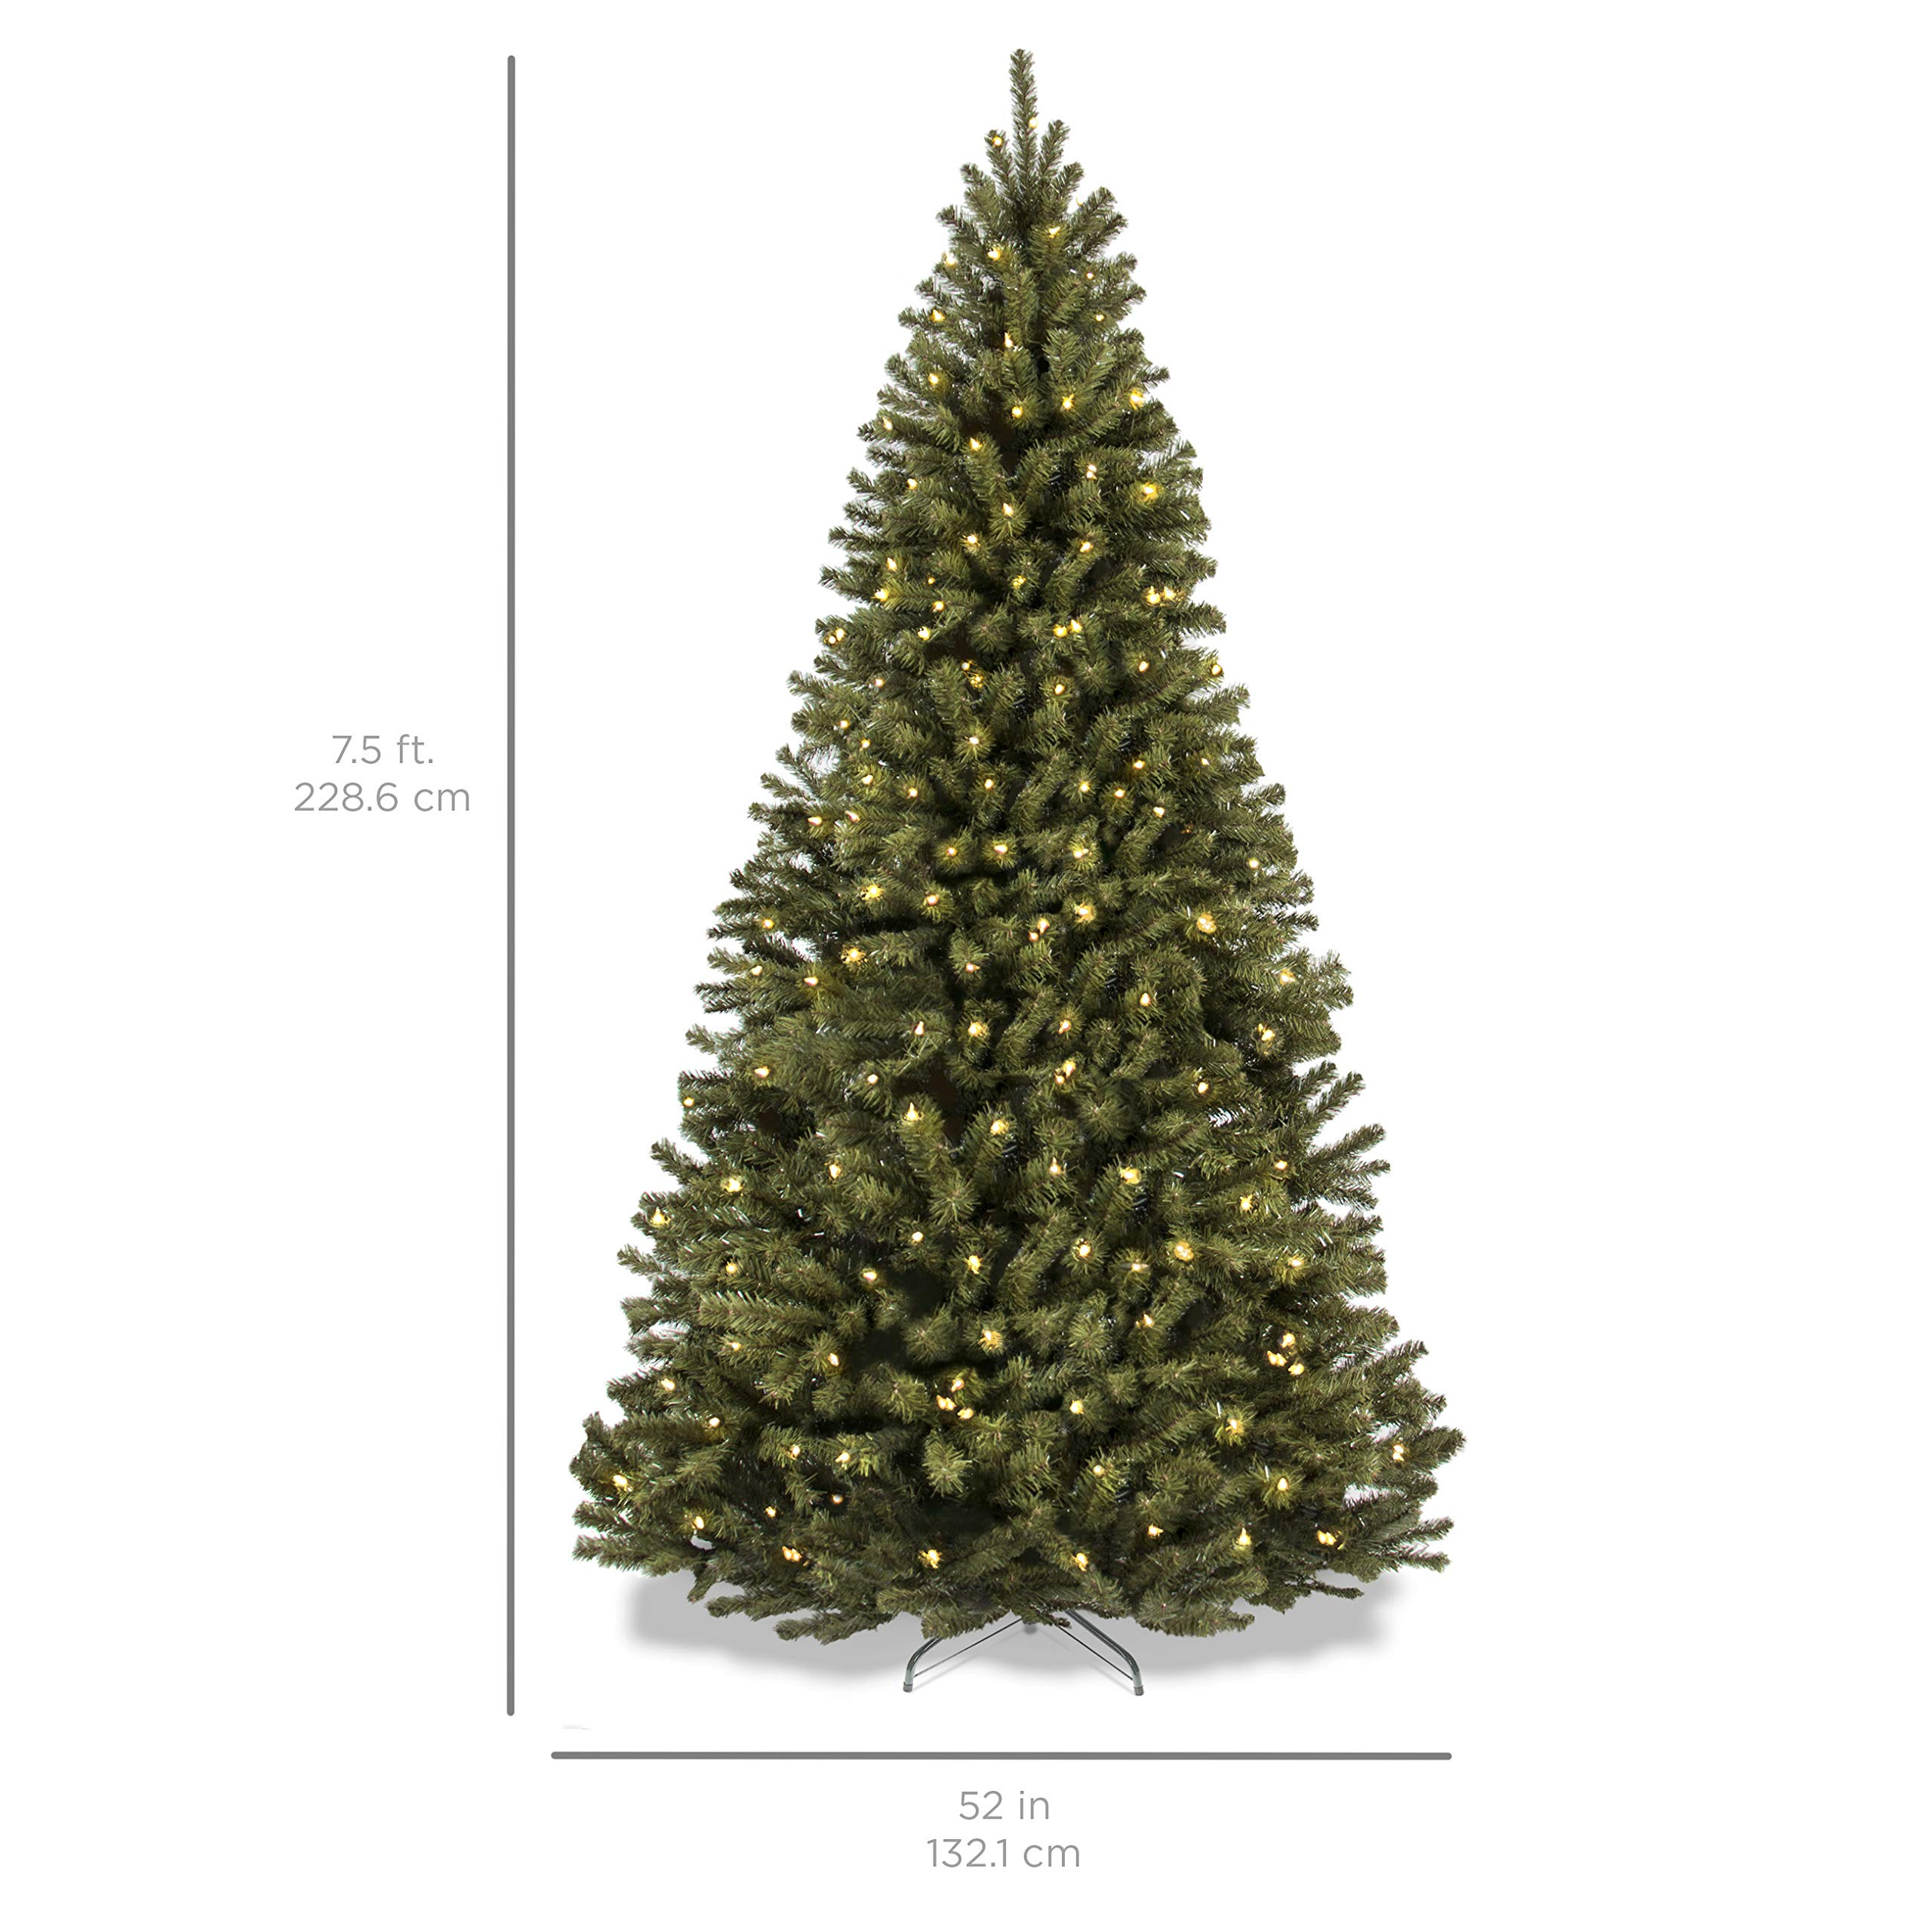 Best Choice Products SKY2888 7.5ft Pre-Lit Spruce Hinged Artificial Christmas Tree w/ 550 UL-Certified LED Lights, Foldable Stand-Green, Medium by Best Choice Products (Image #7)